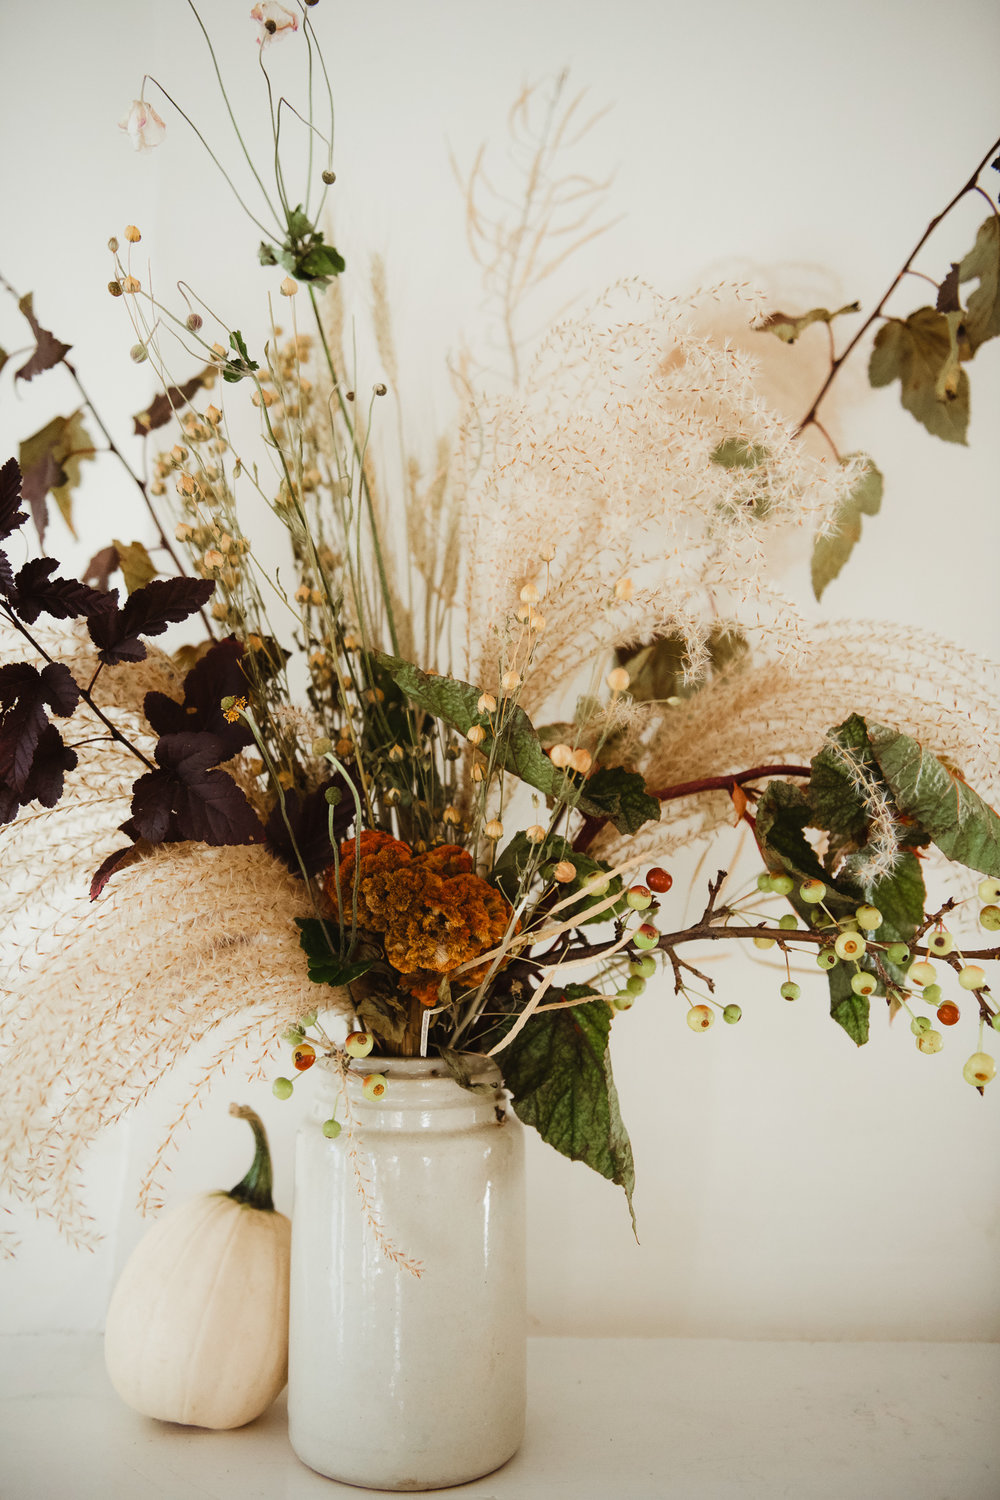 Loden Floral  autumnal arrangements including locally grown casper pumpkins